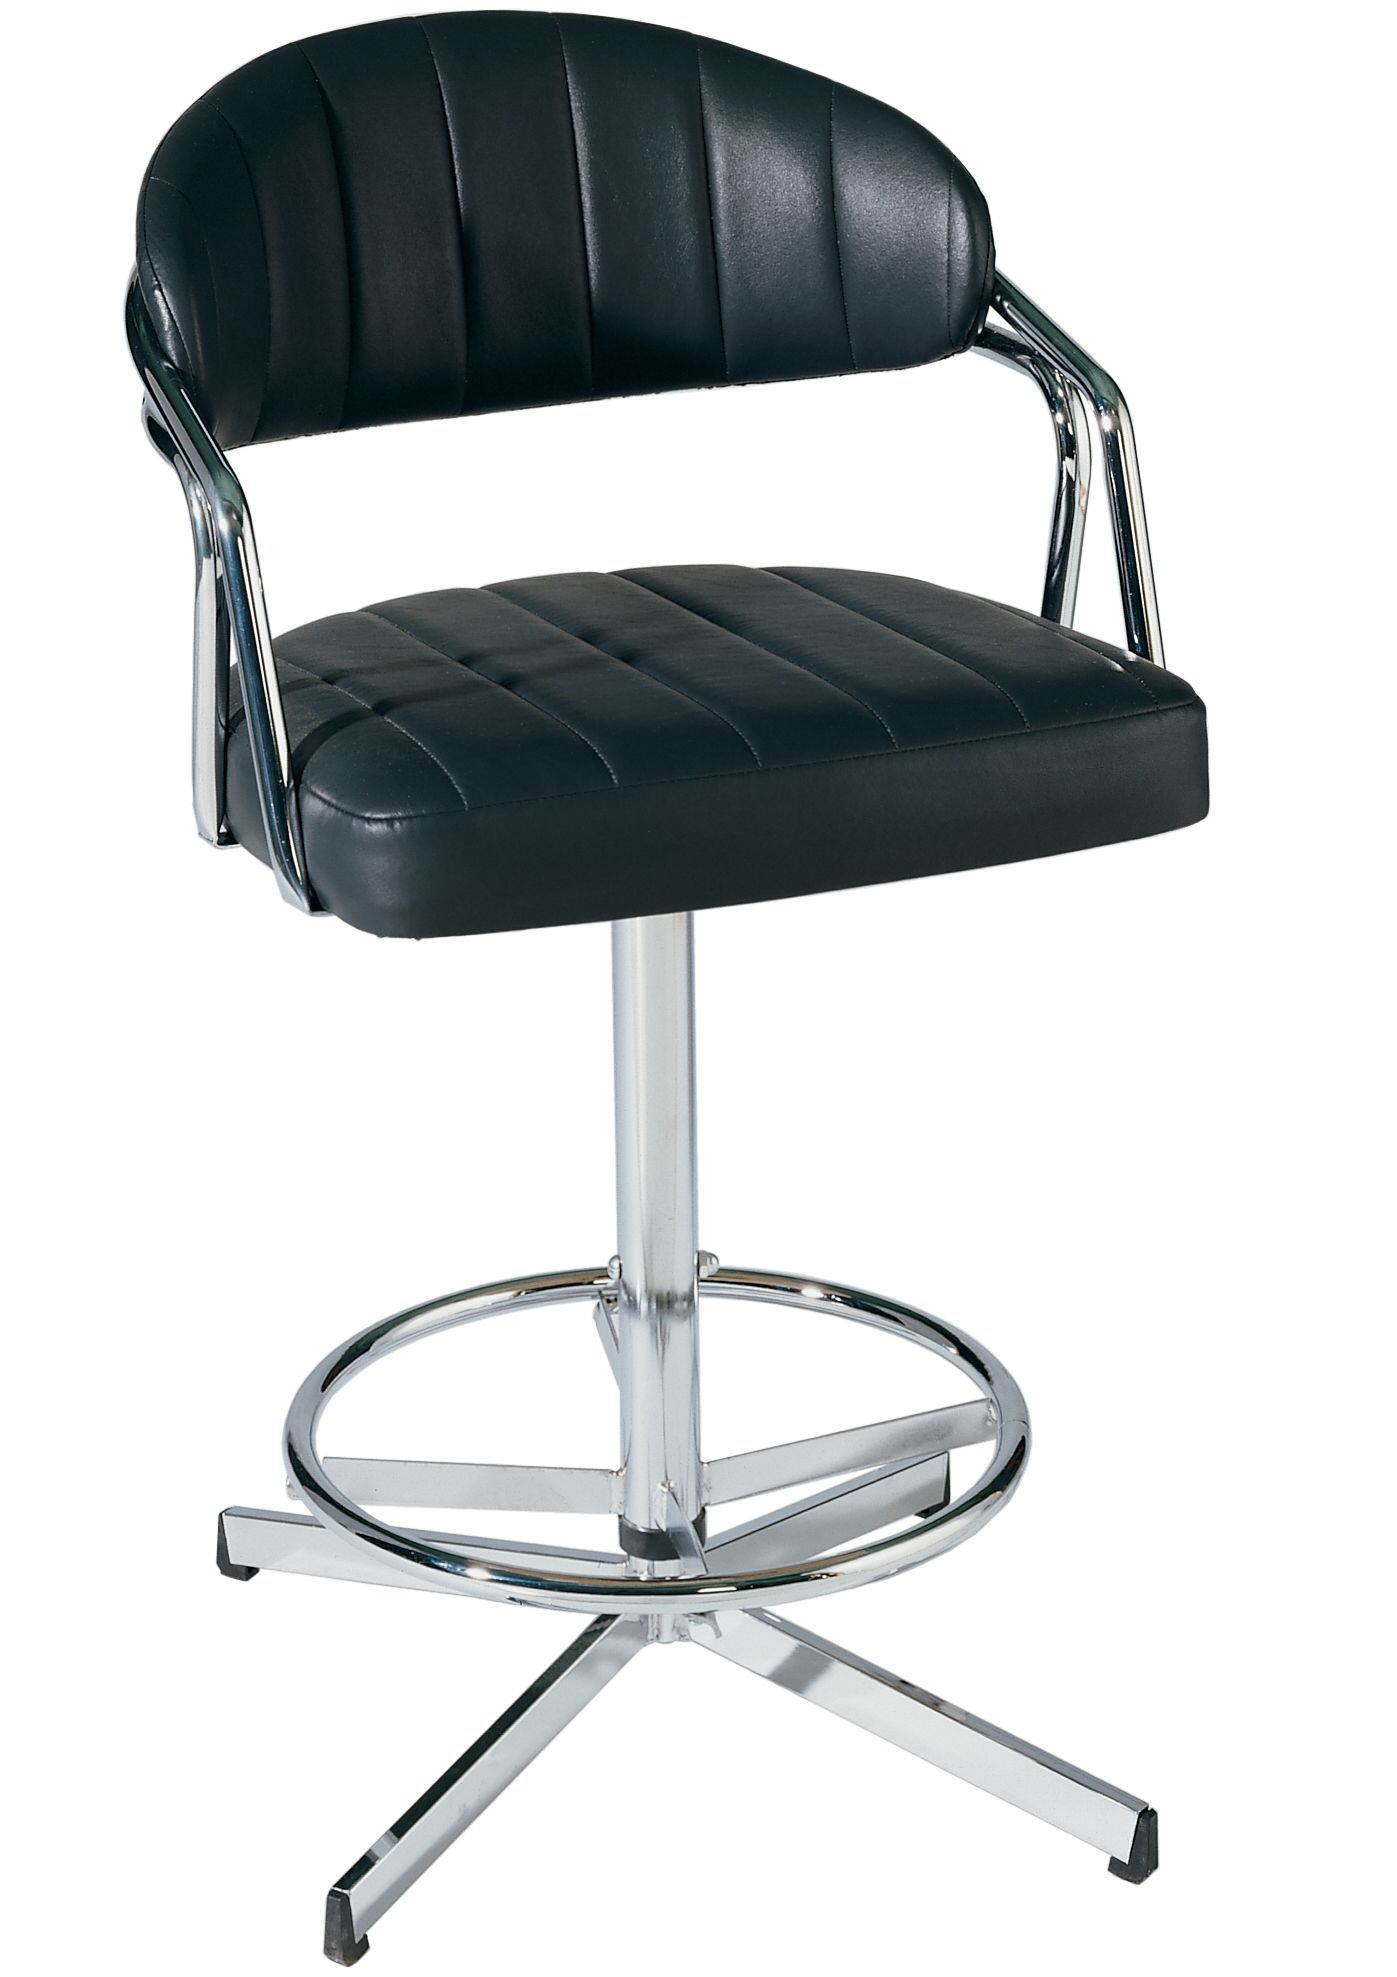 Furniture Black Vinyl Upholstered Swivel Chair With Rounded Chrome